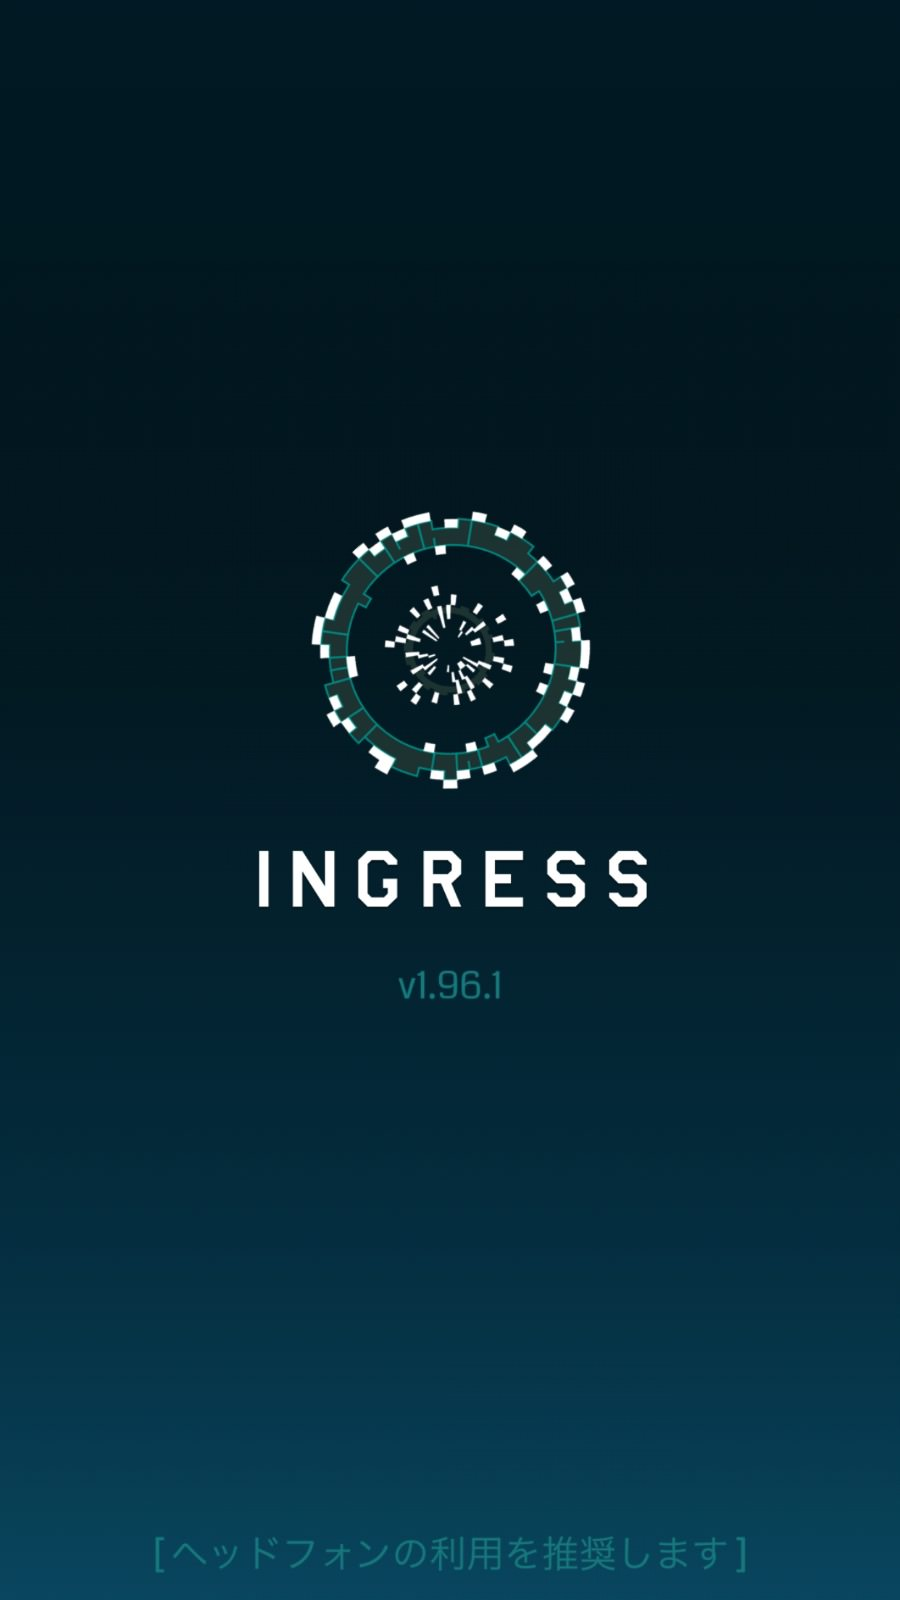 【Ingress】iOS版「Ingress 1.96.1」リリース